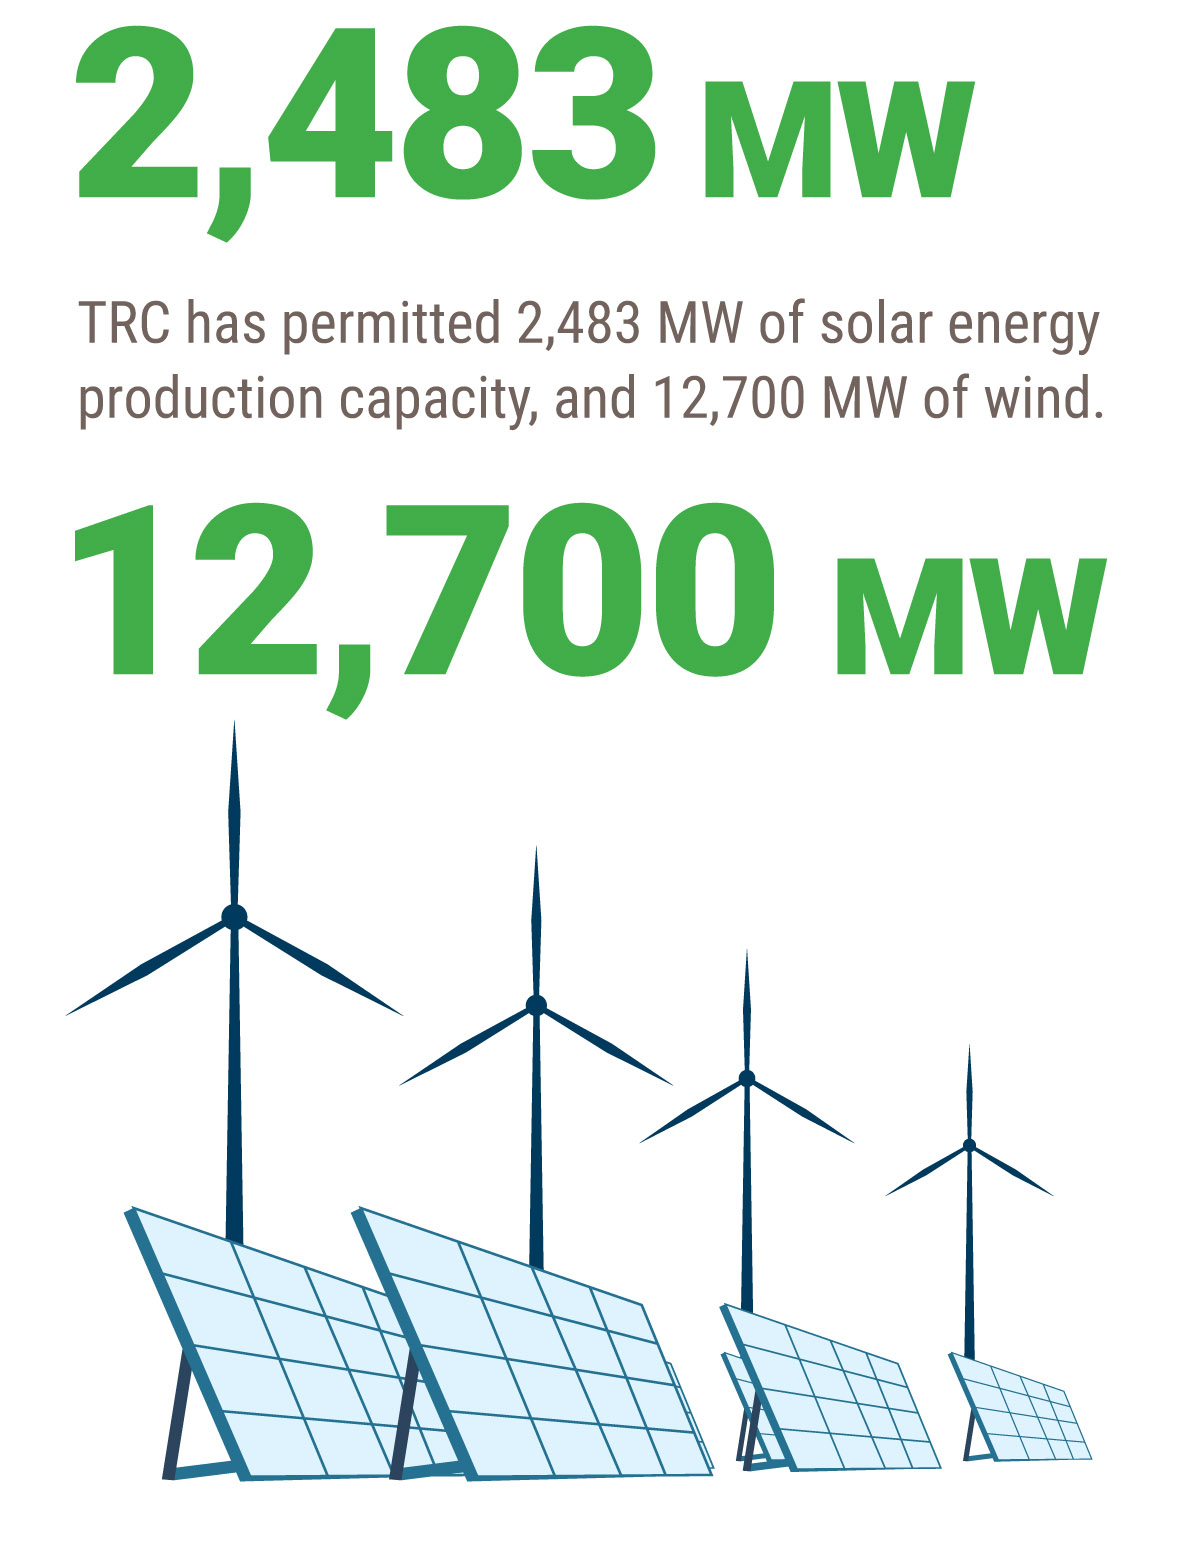 TRC helps plan, permit, engineer, and support construction of your solar and wind energy projects